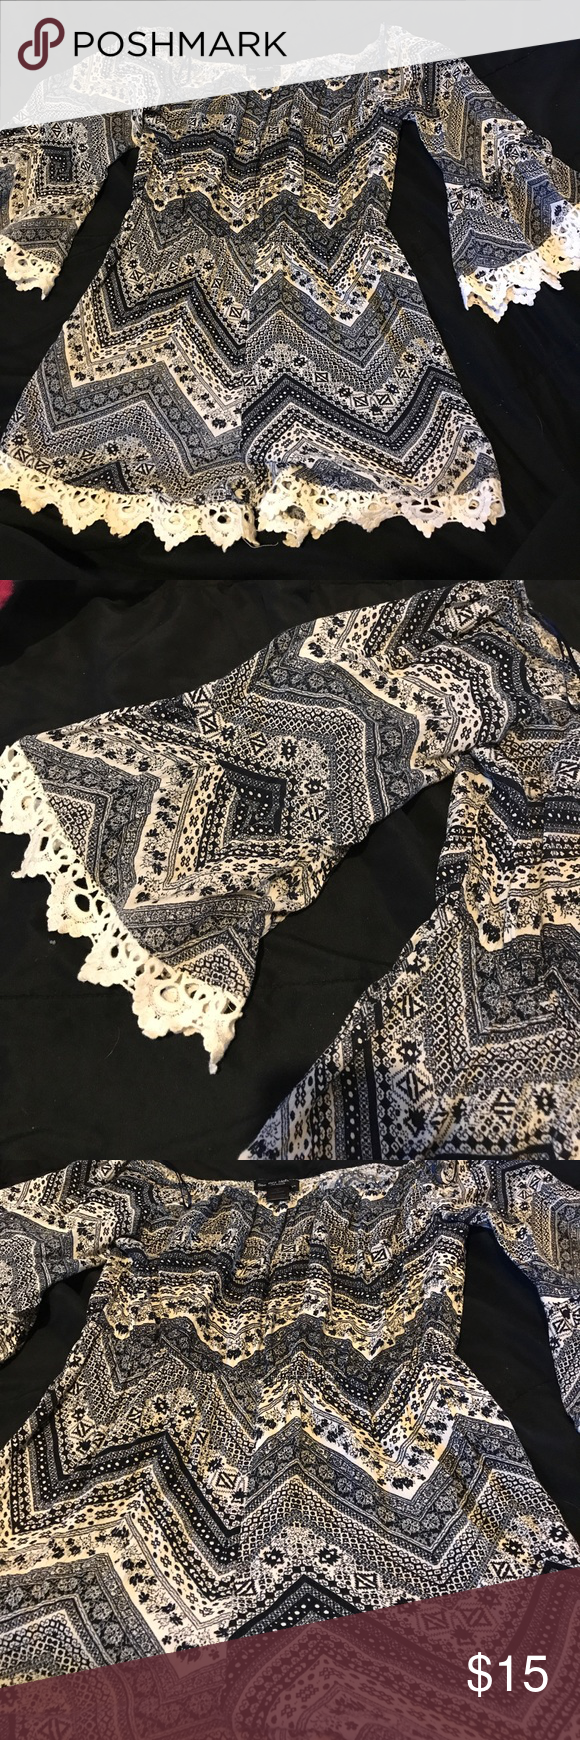 Romper Adorable romper from Ross! Was worn only once for an anniversary outing and hasn't been worn since. In great condition and super super cute! Features lace around the edges of the arms and bottom of shorts. Has flare sleeves See You Monday Dresses